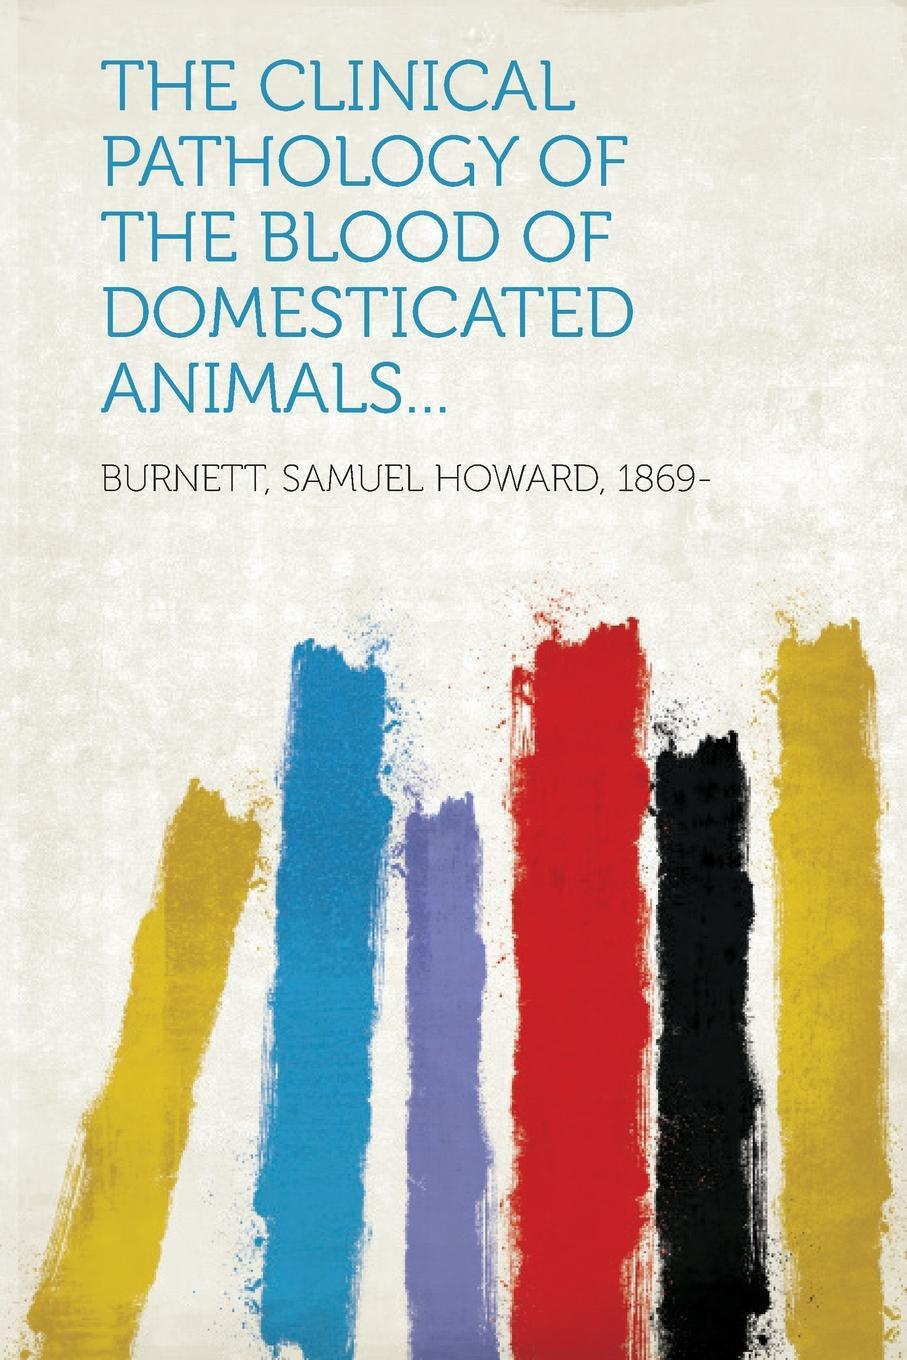 The Clinical Pathology of the Blood of Domesticated Animals...